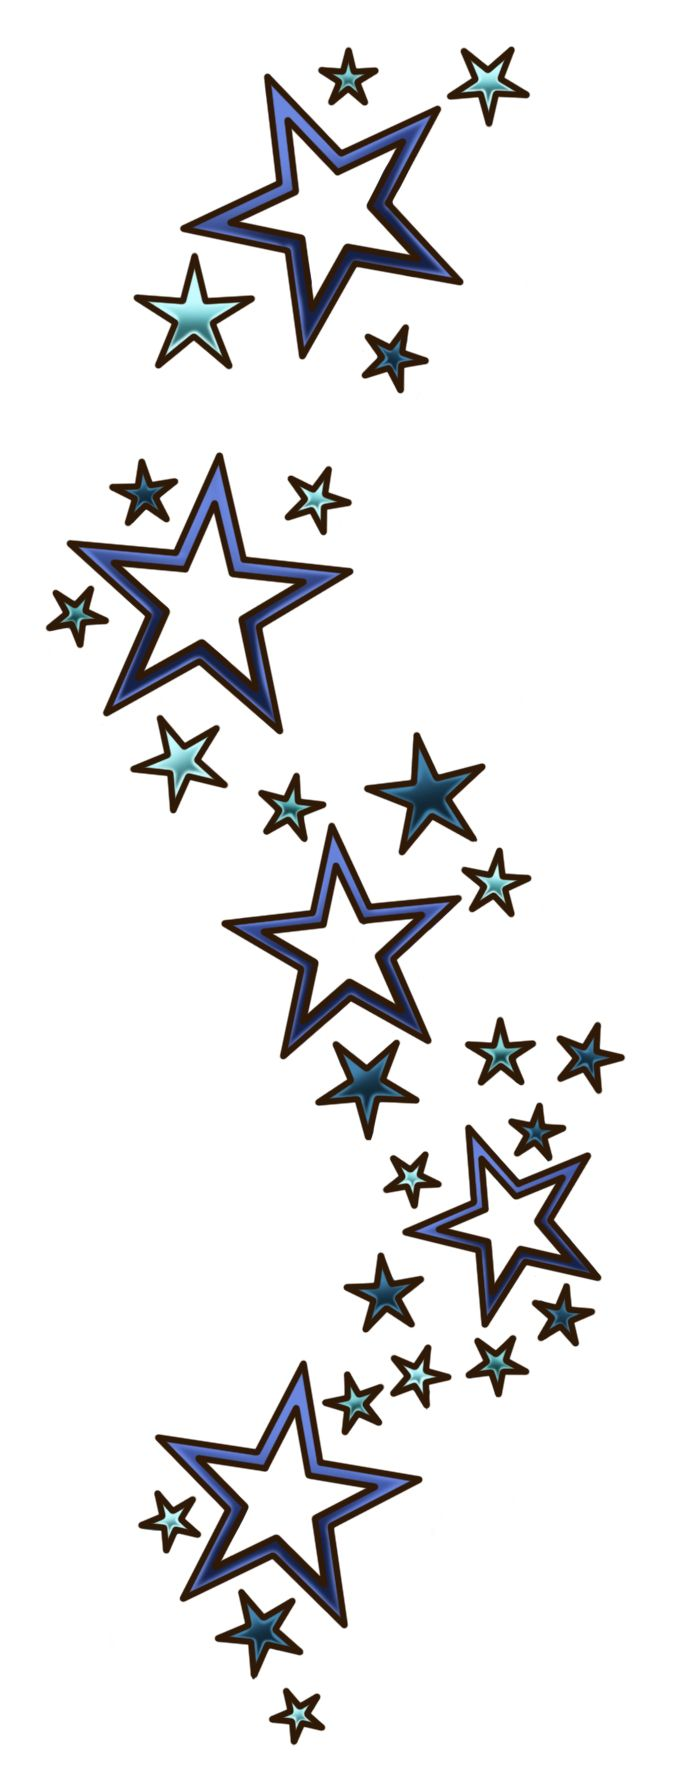 Star Tattoos Designs Stars with double borders. keep the negative space, add some color for birthstones of family members. Possible idea to finish my tattoo!